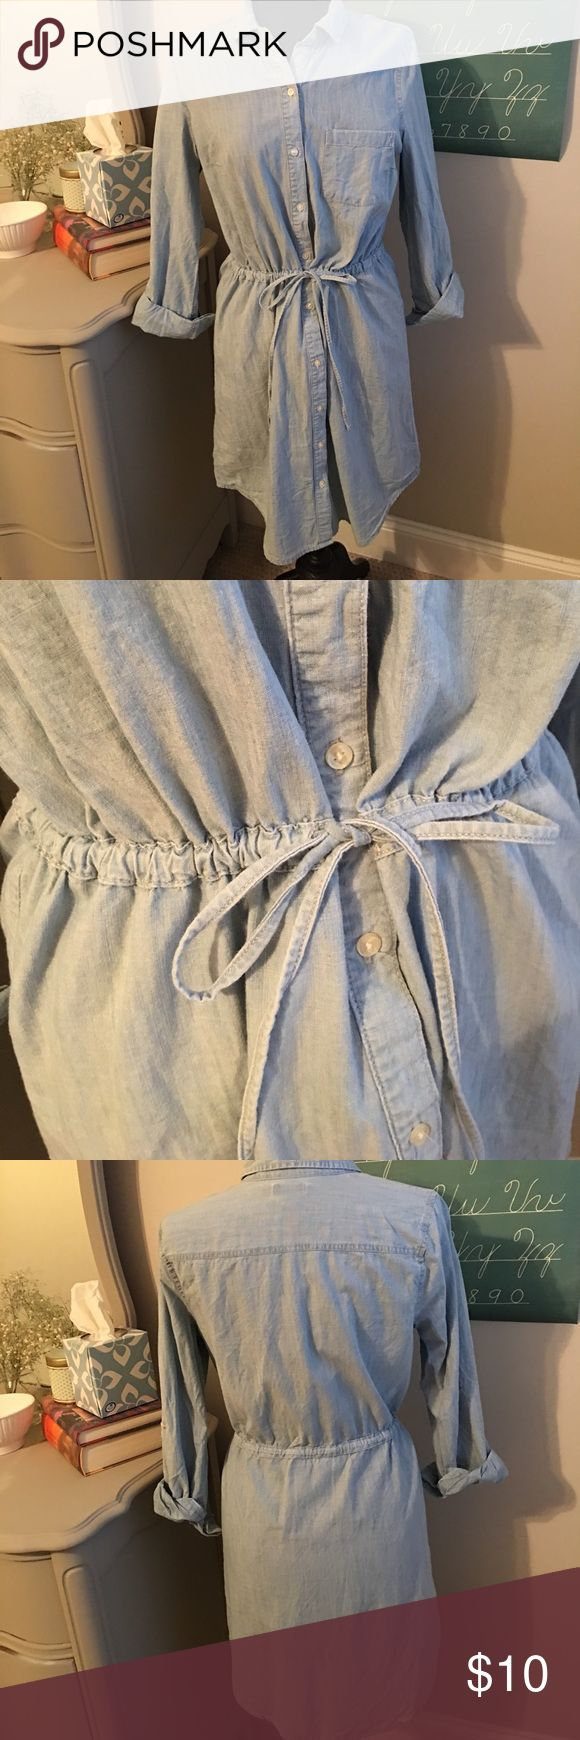 Denim button up long sleeve dress Denim button up dress  36 inches from shoulder to hem  add a statement necklace or some cowboy boots  Can be worn for all kinds of events Old Navy Dresses Midi